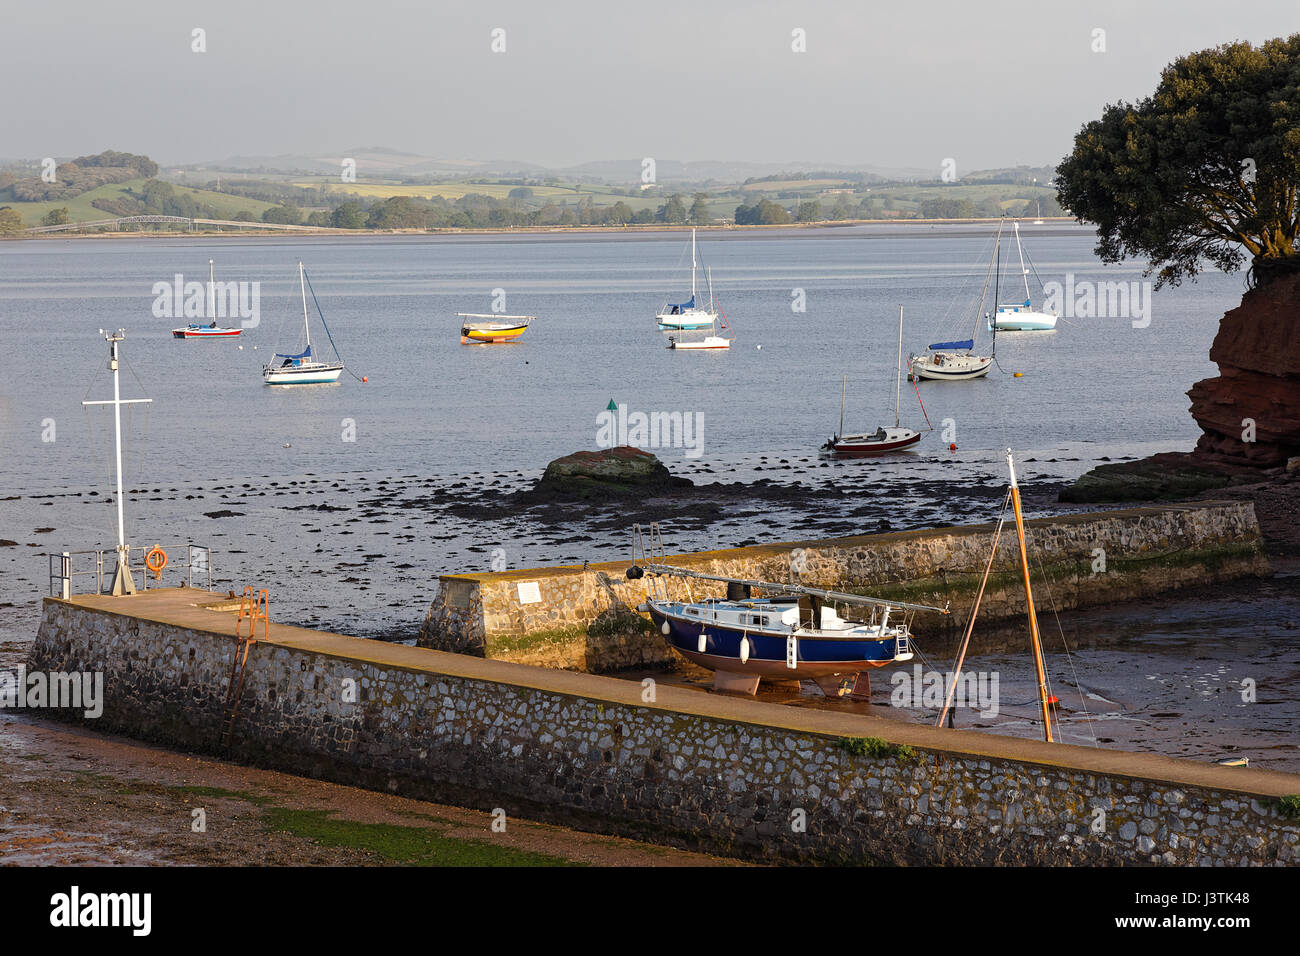 Lympstone Boat Shelter on the River Exe estuary - Stock Image